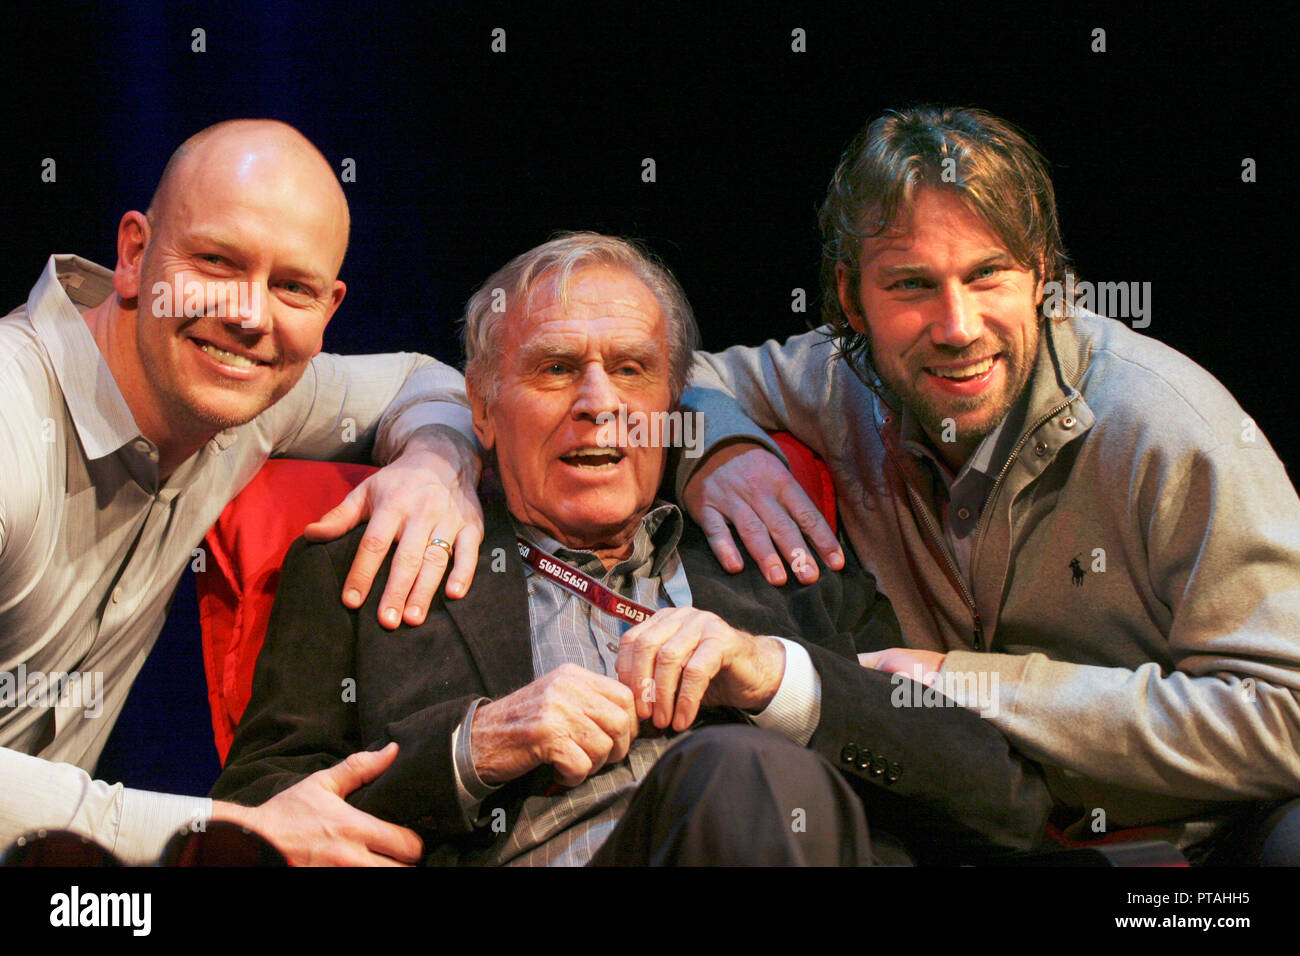 Swedish Icehockey legendary Sven Tumba at a tribute gala for him in the 80th anniversary.congratulations on former Icehockey professionals in NHL Mats Sundin Toronto and Peter Forsberg Colarado - Stock Image